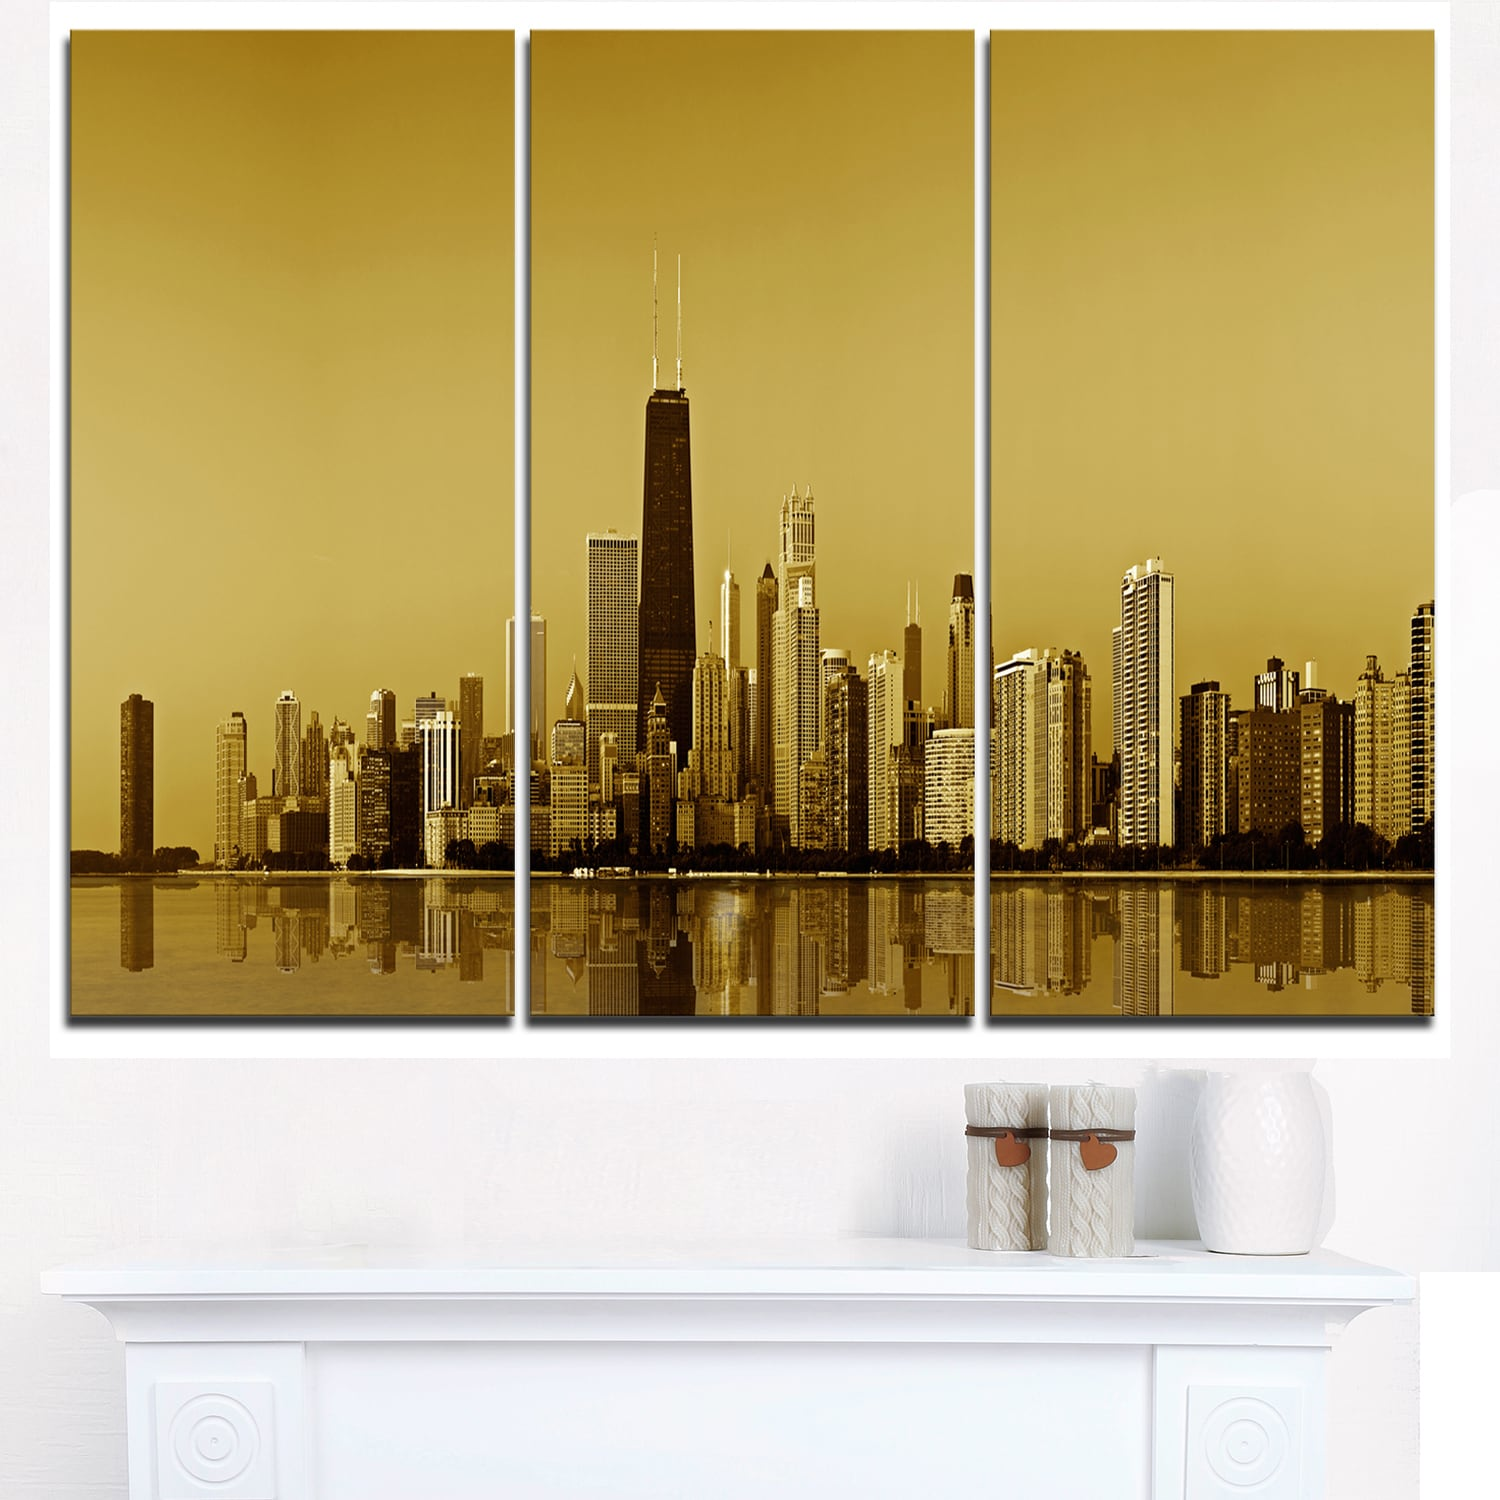 DESIGN ART Chicago Gold Coast with Skyscrapers - Cityscape Glossy ...